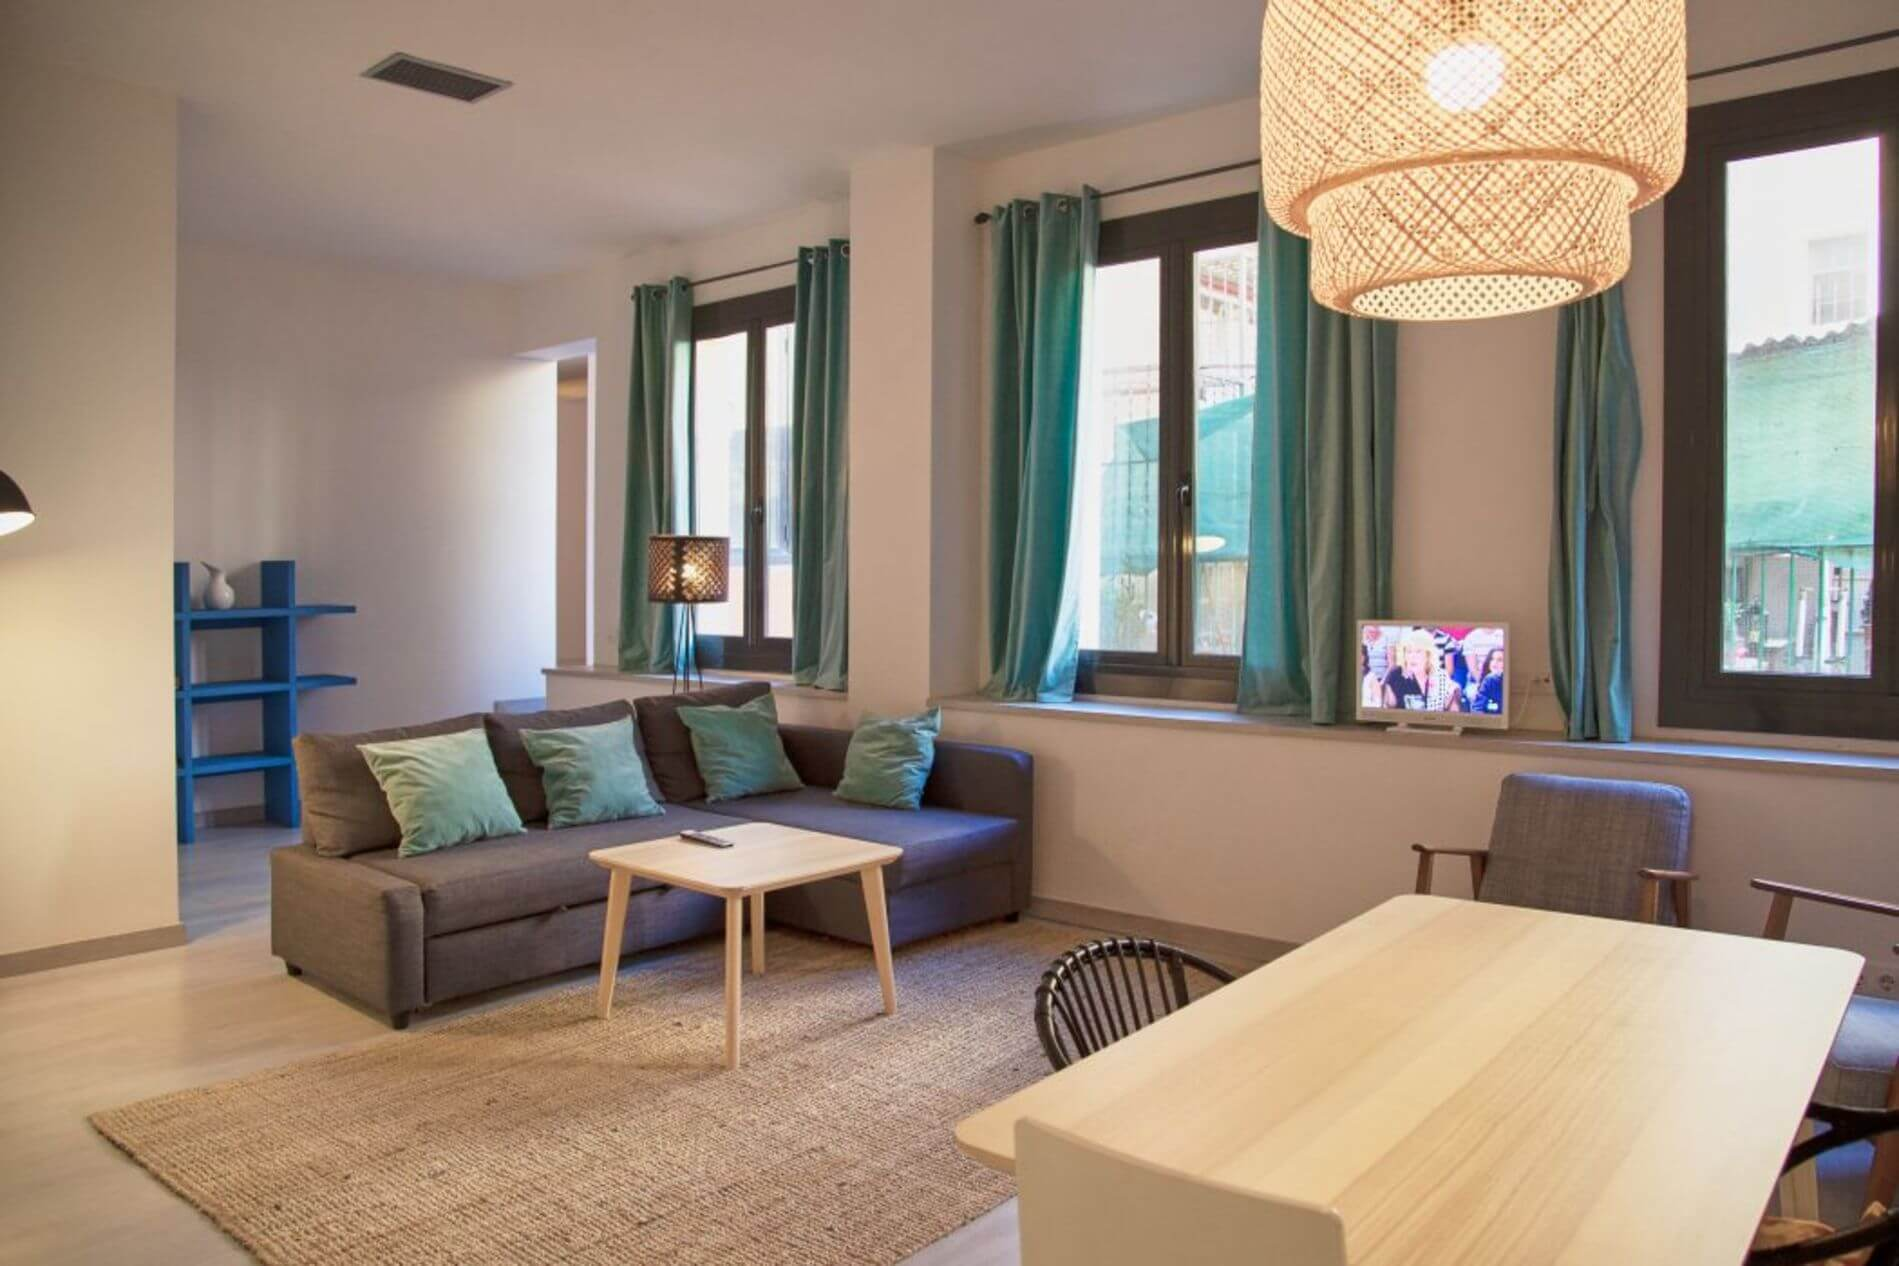 Fully-fitted property to rent near Plaza Catalunya in Barcelona